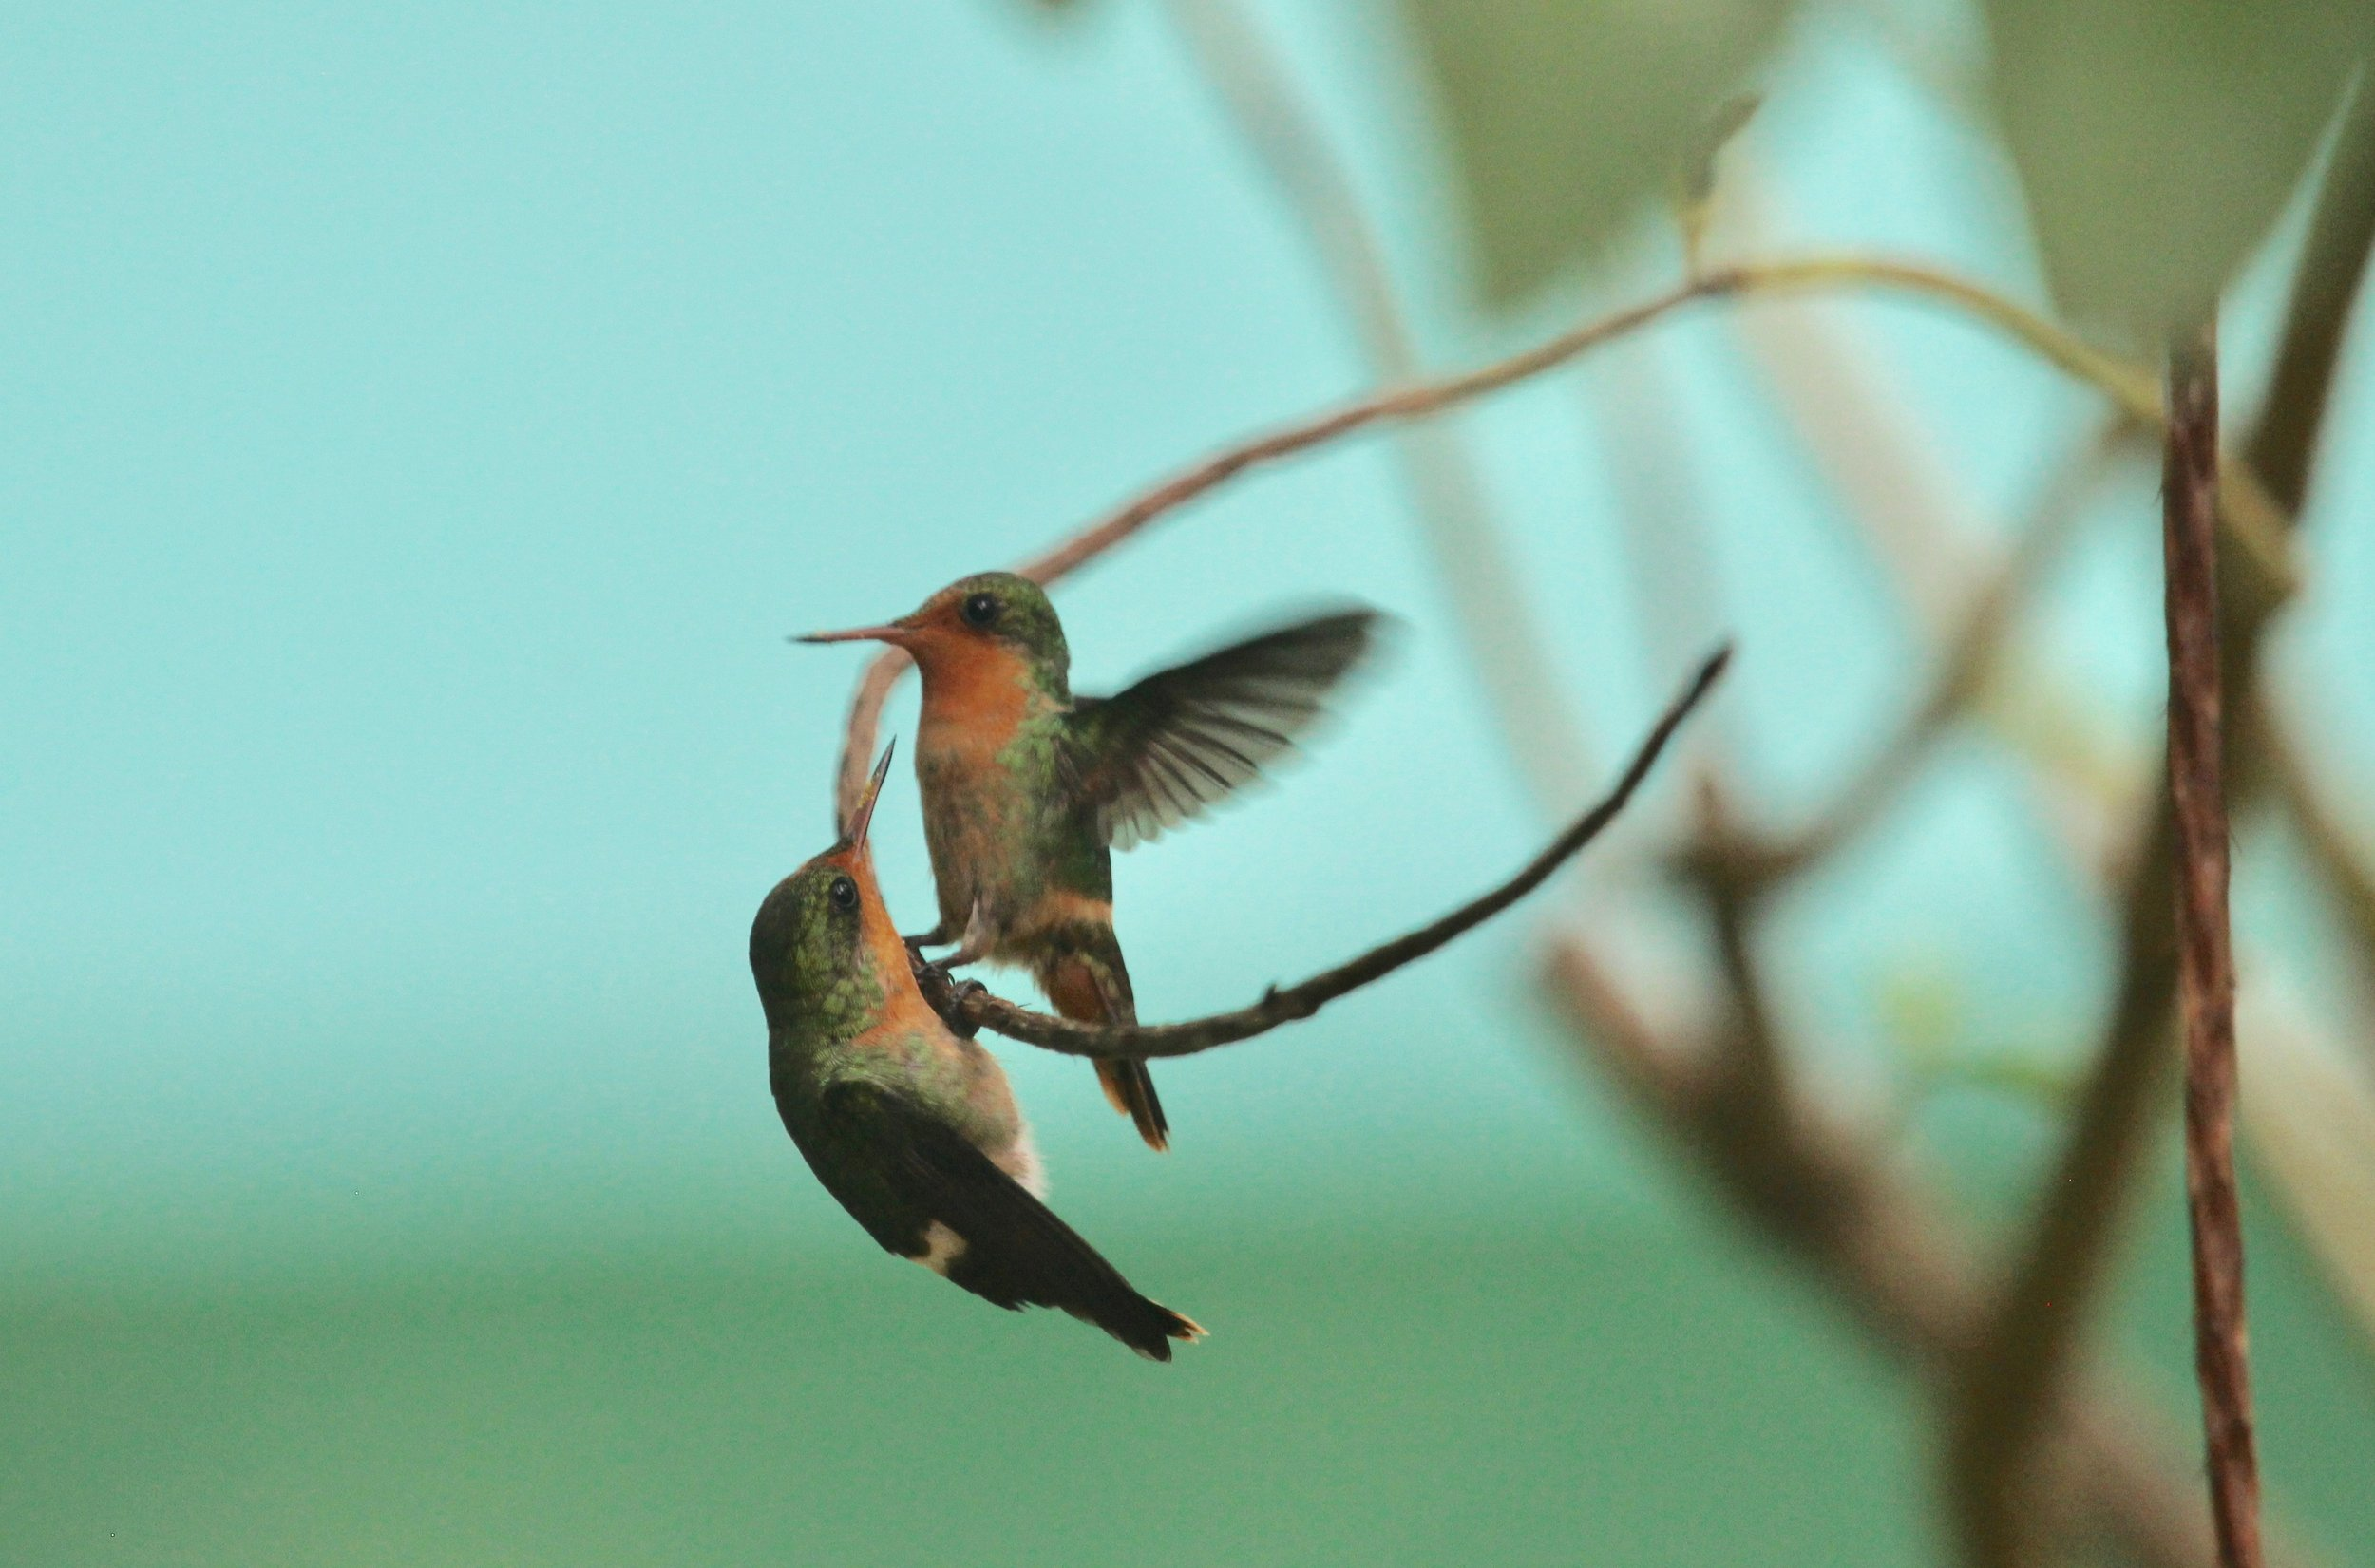 Tufted Coquettes, are the 2nd smallest hummingbirds in the world. This is a mother and juvenile, Asa Wright Nature Center, Trinidad